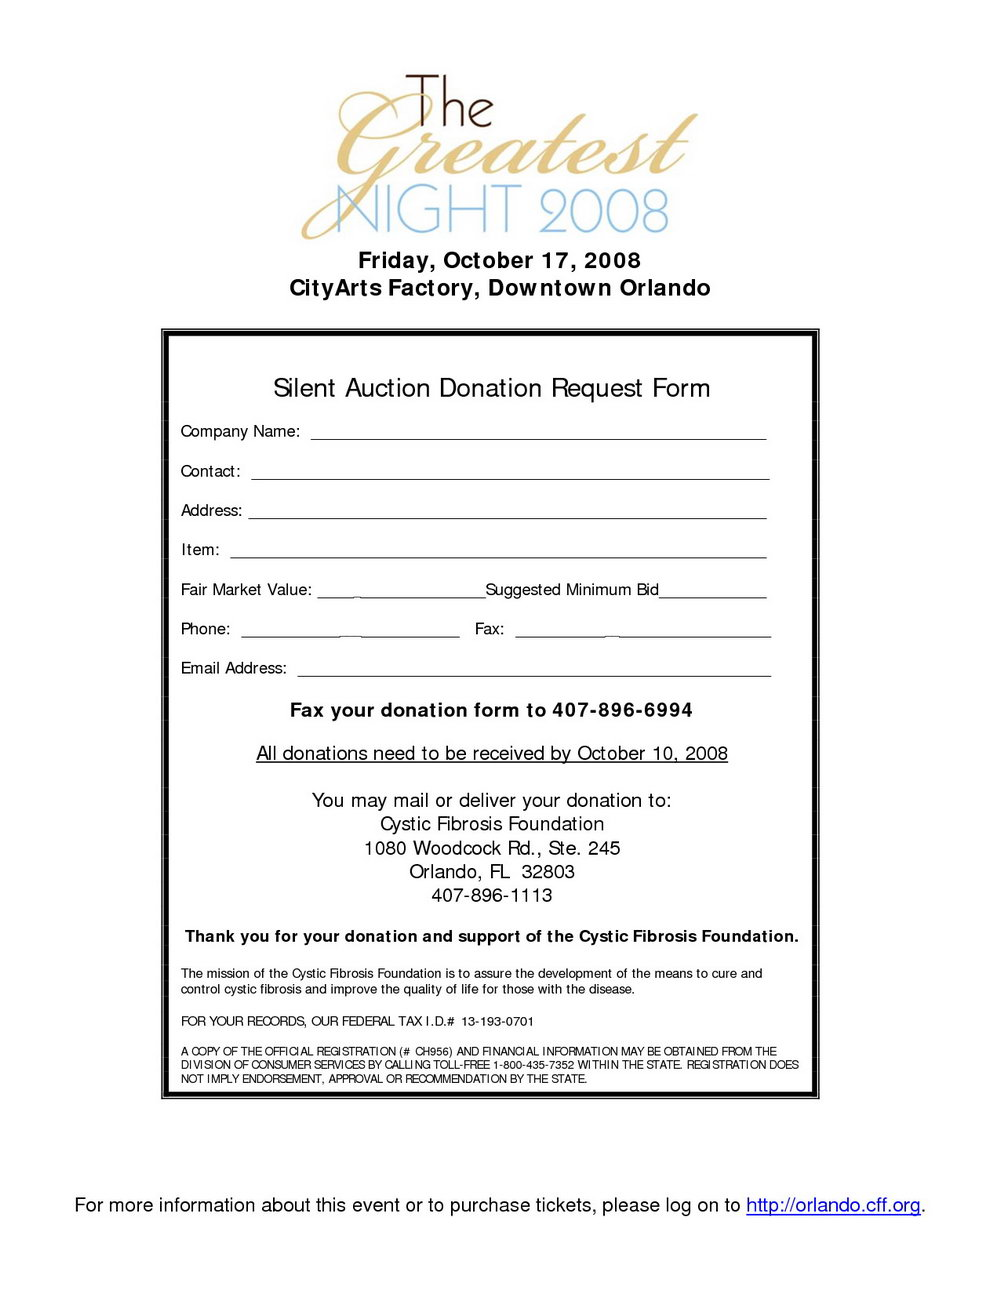 Silent Auction Donation Request Letter Template